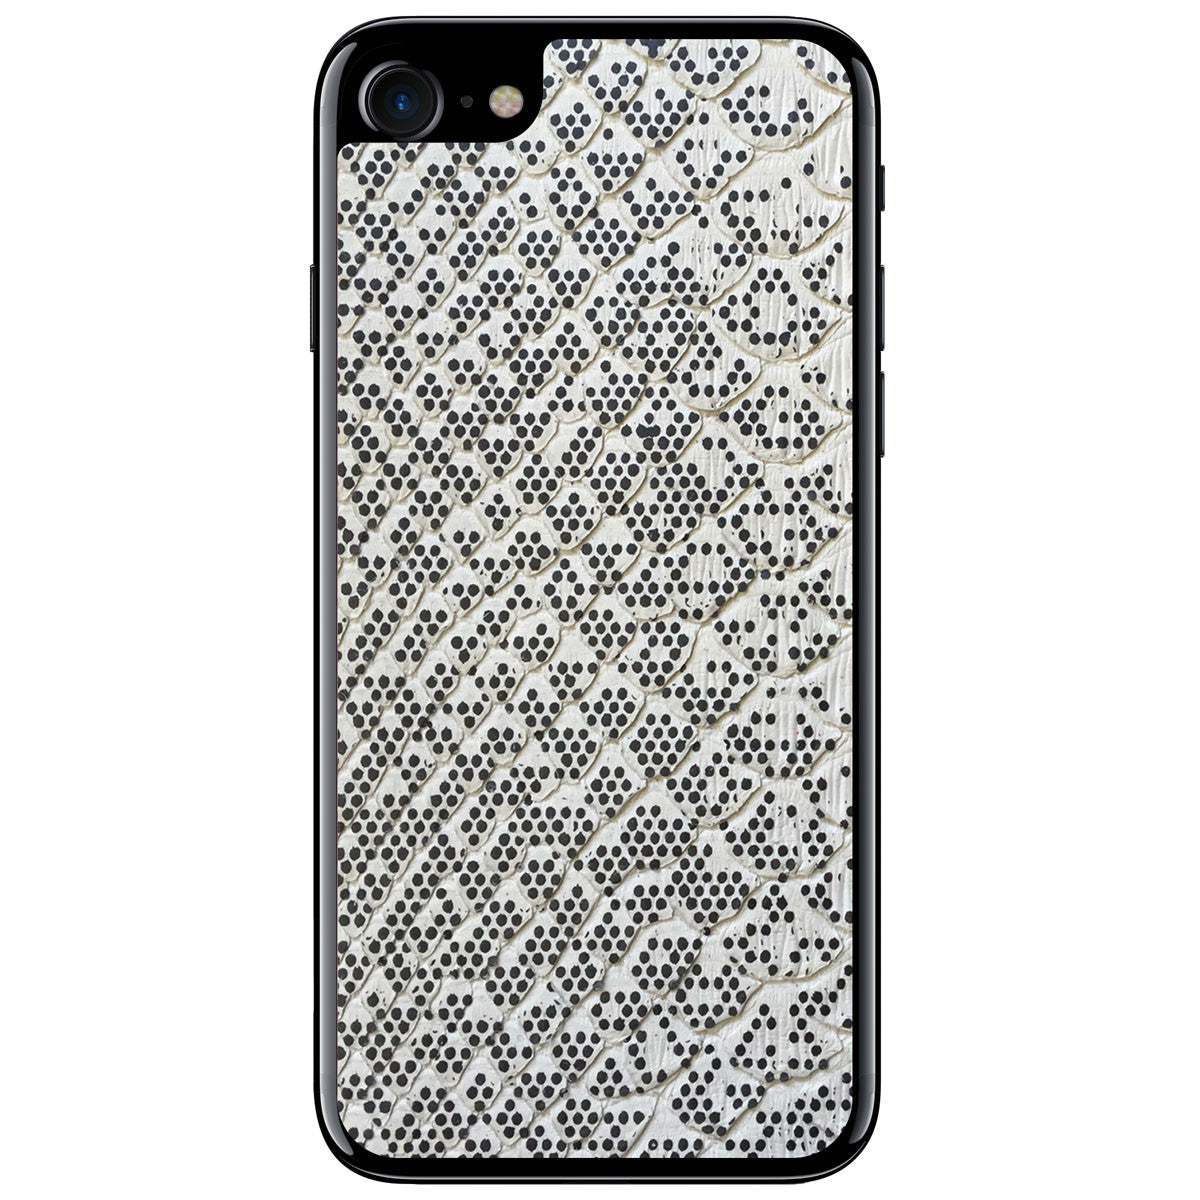 Pixelated Python iPhone 8 Leather Skin